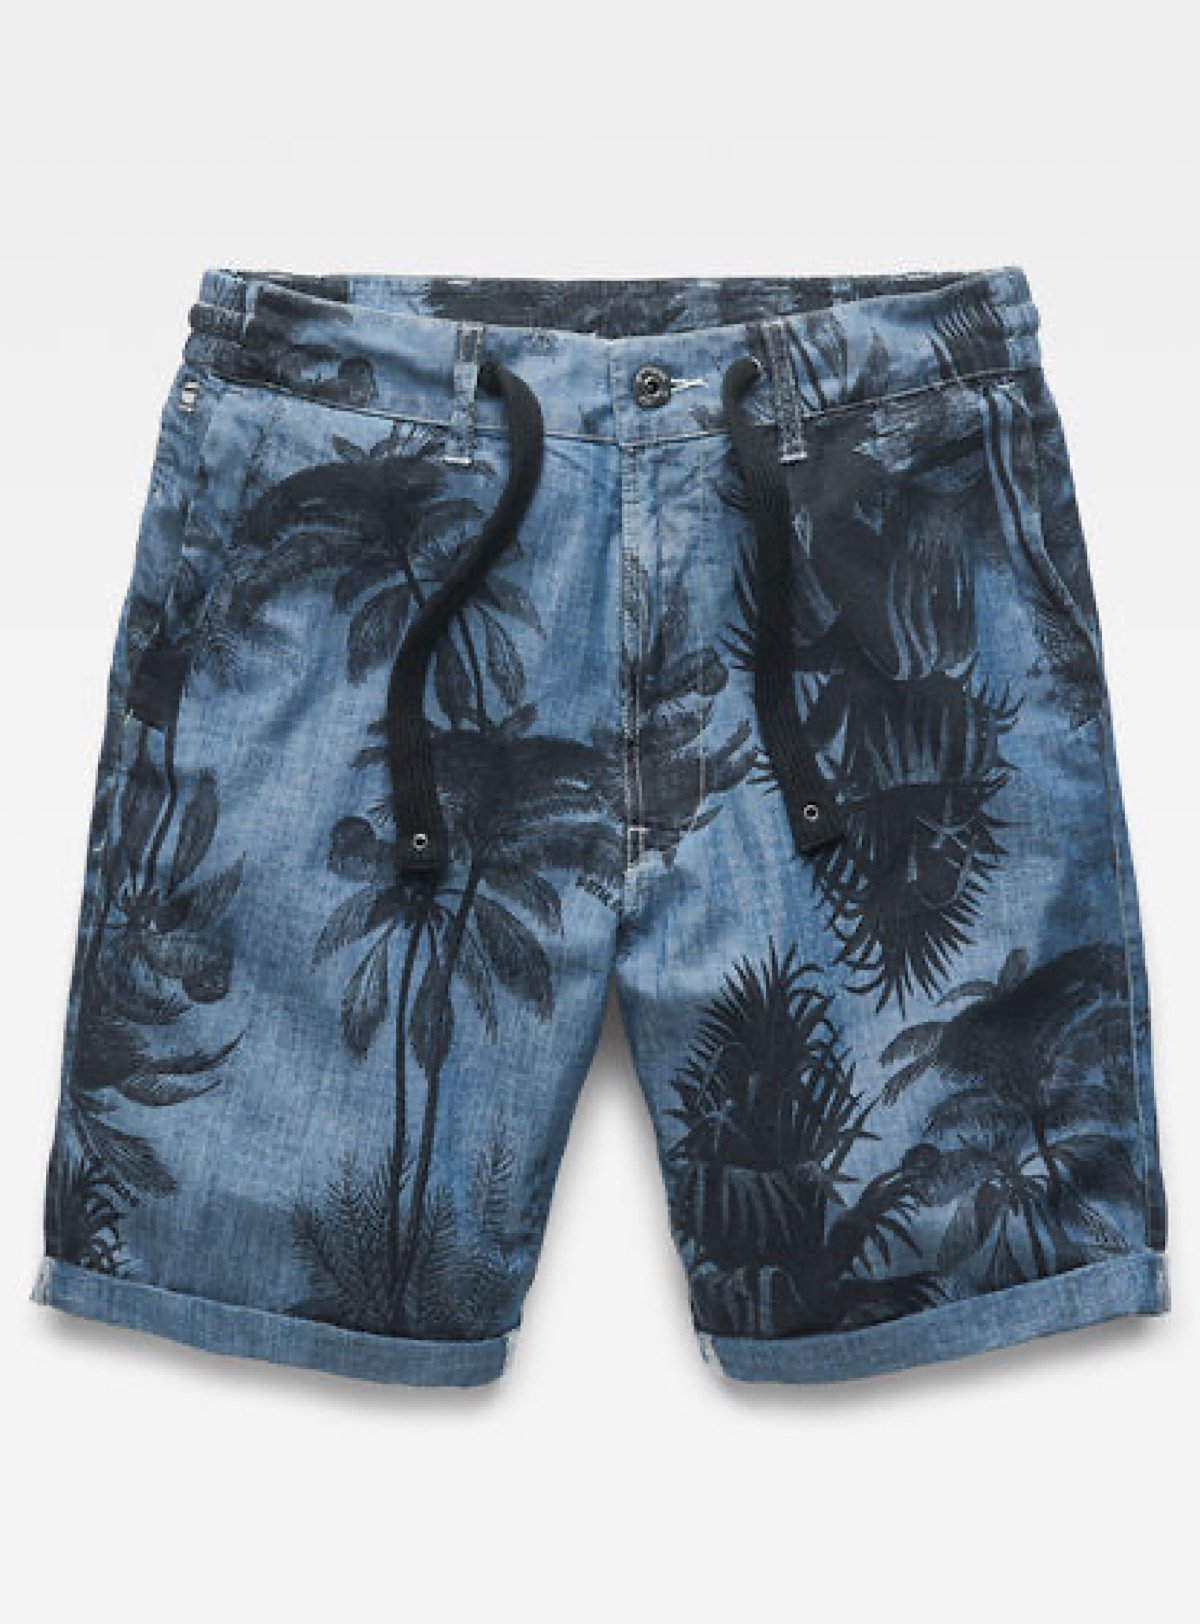 G-Star Shorts - Bronson Trainer Relaxed - Medium Aged Dark Black and Navy